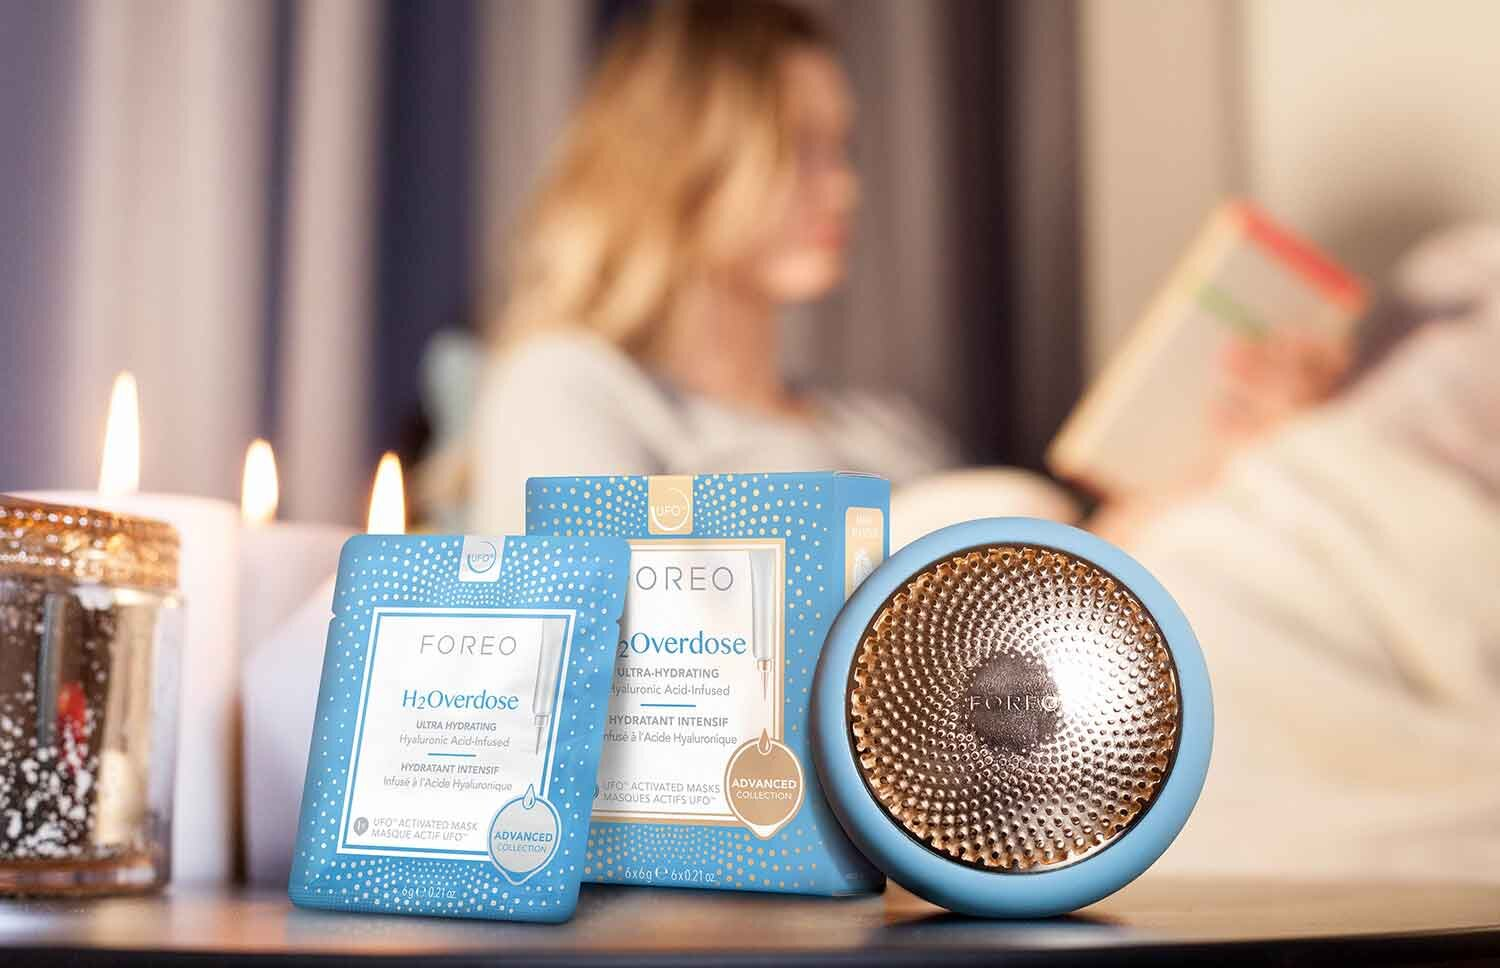 Foreo H2Overdose facemasks and blue UFO